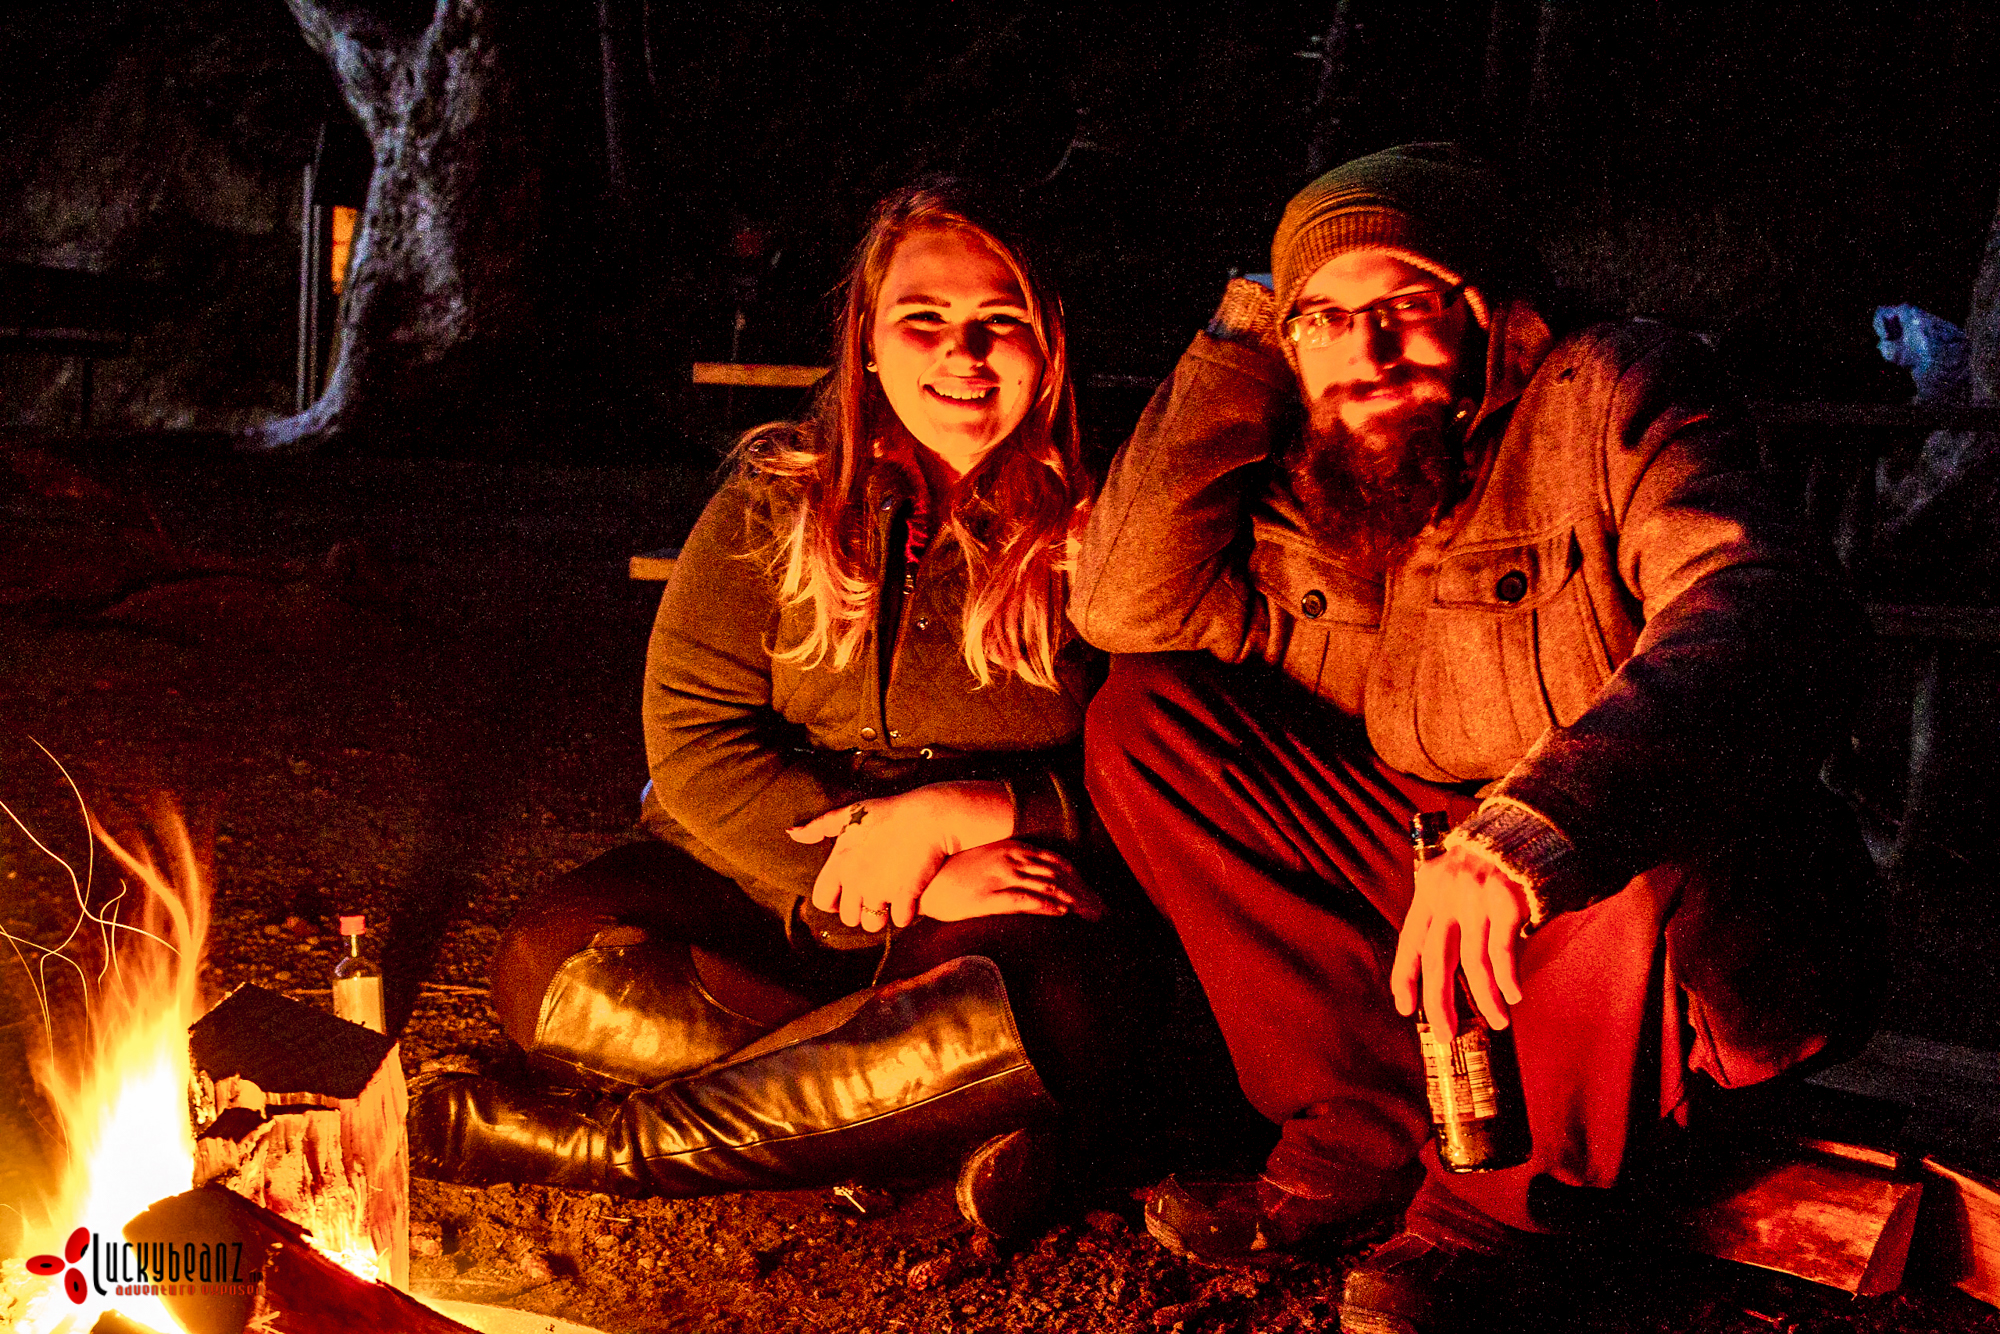 Meeting new friends and sharing their fire.